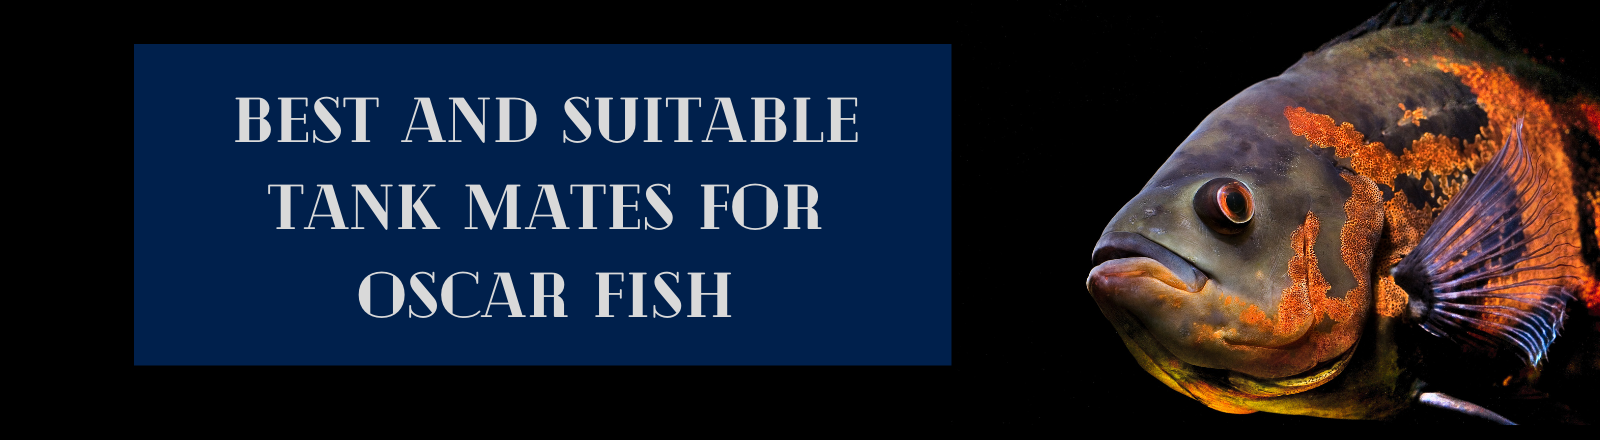 Oscar fish Tank mates- 6 Best and Compatible Fishes